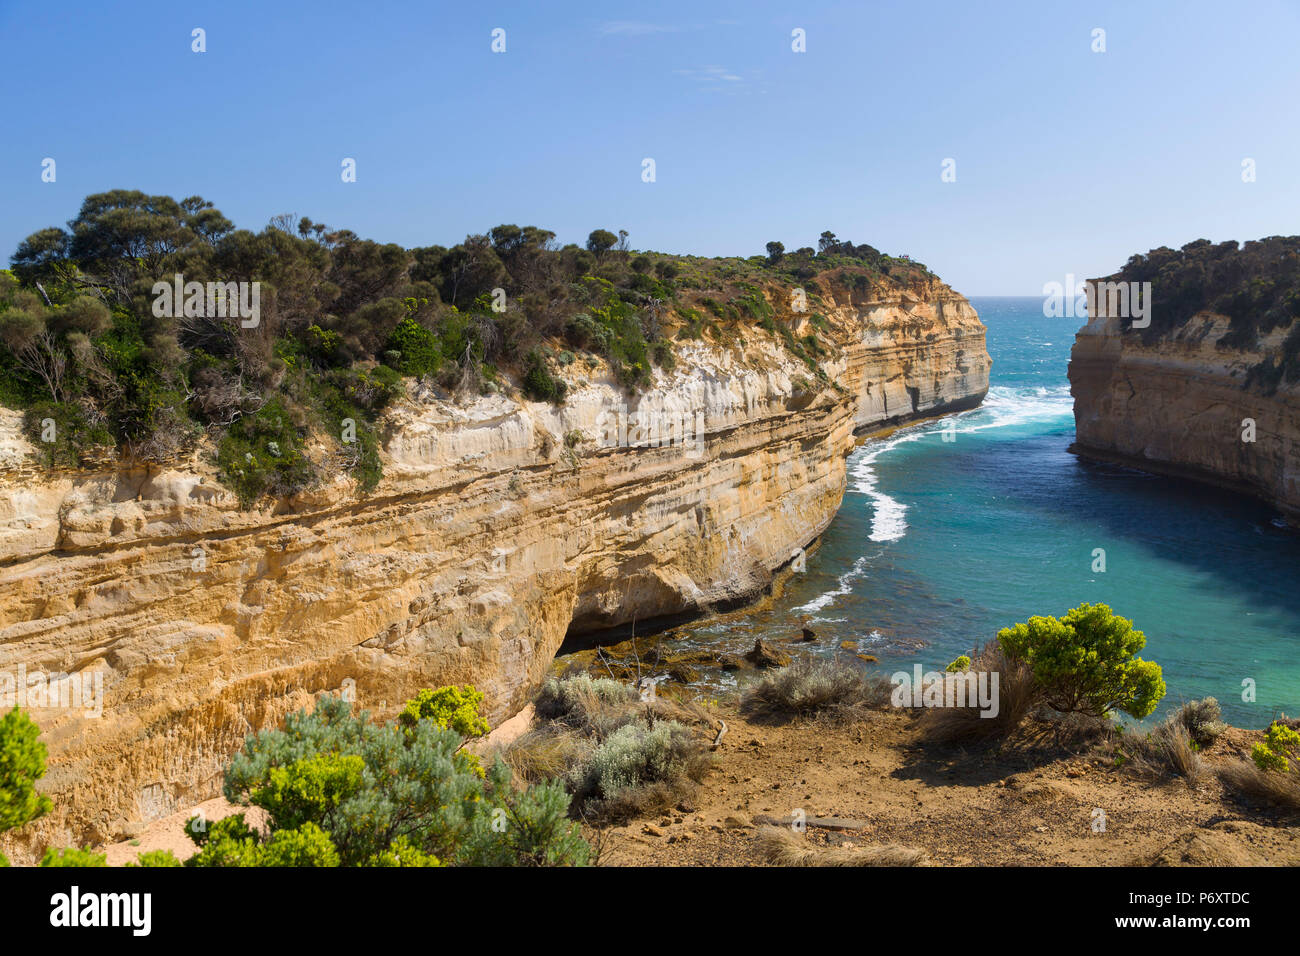 Loch Ard Gorge, Port Campbell National Park, Great Ocean Road, Victoria, Australia - Stock Image